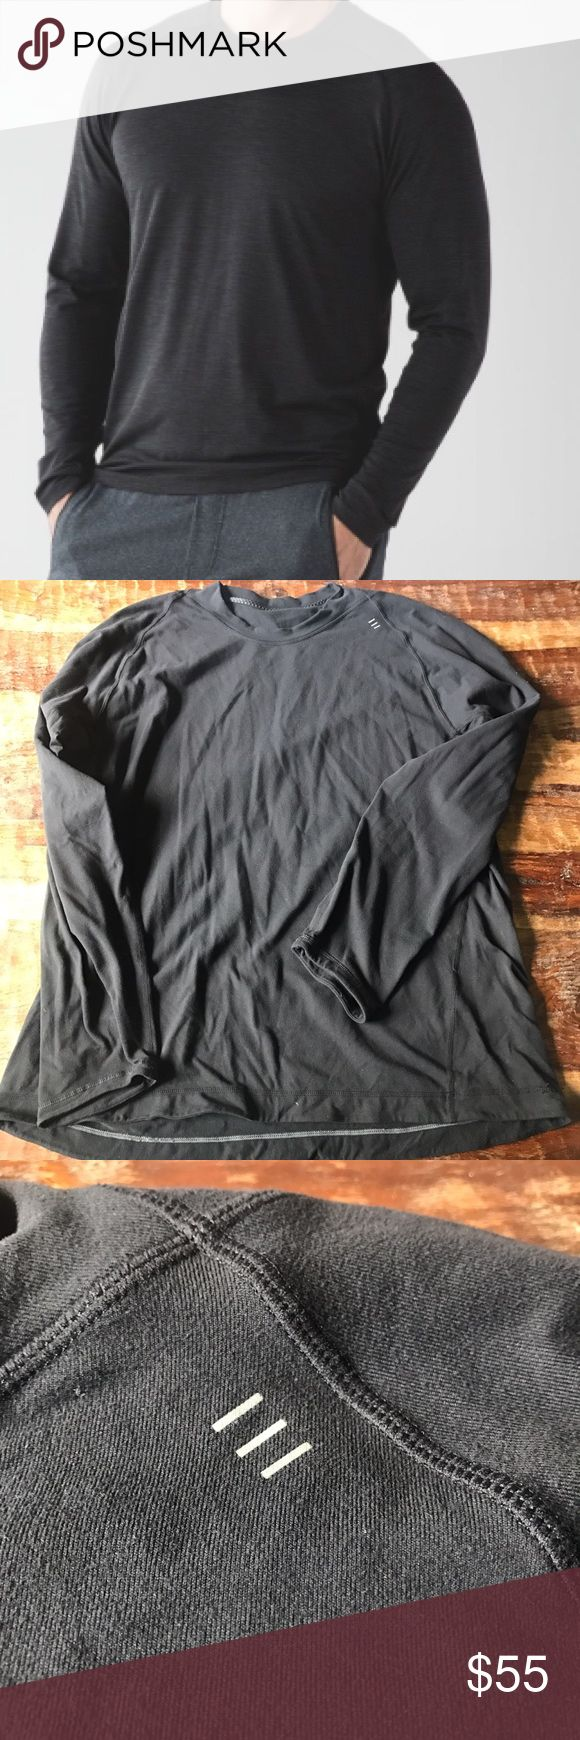 "Lululemon Side Vent Tech In excellent condition dark black long sleeve side vented top. Chest is 23.5"" across laying flat and length is 28"". The shirt is as dark as the stock photo and there is no fading. lululemon athletica Shirts Tees - Long Sleeve"